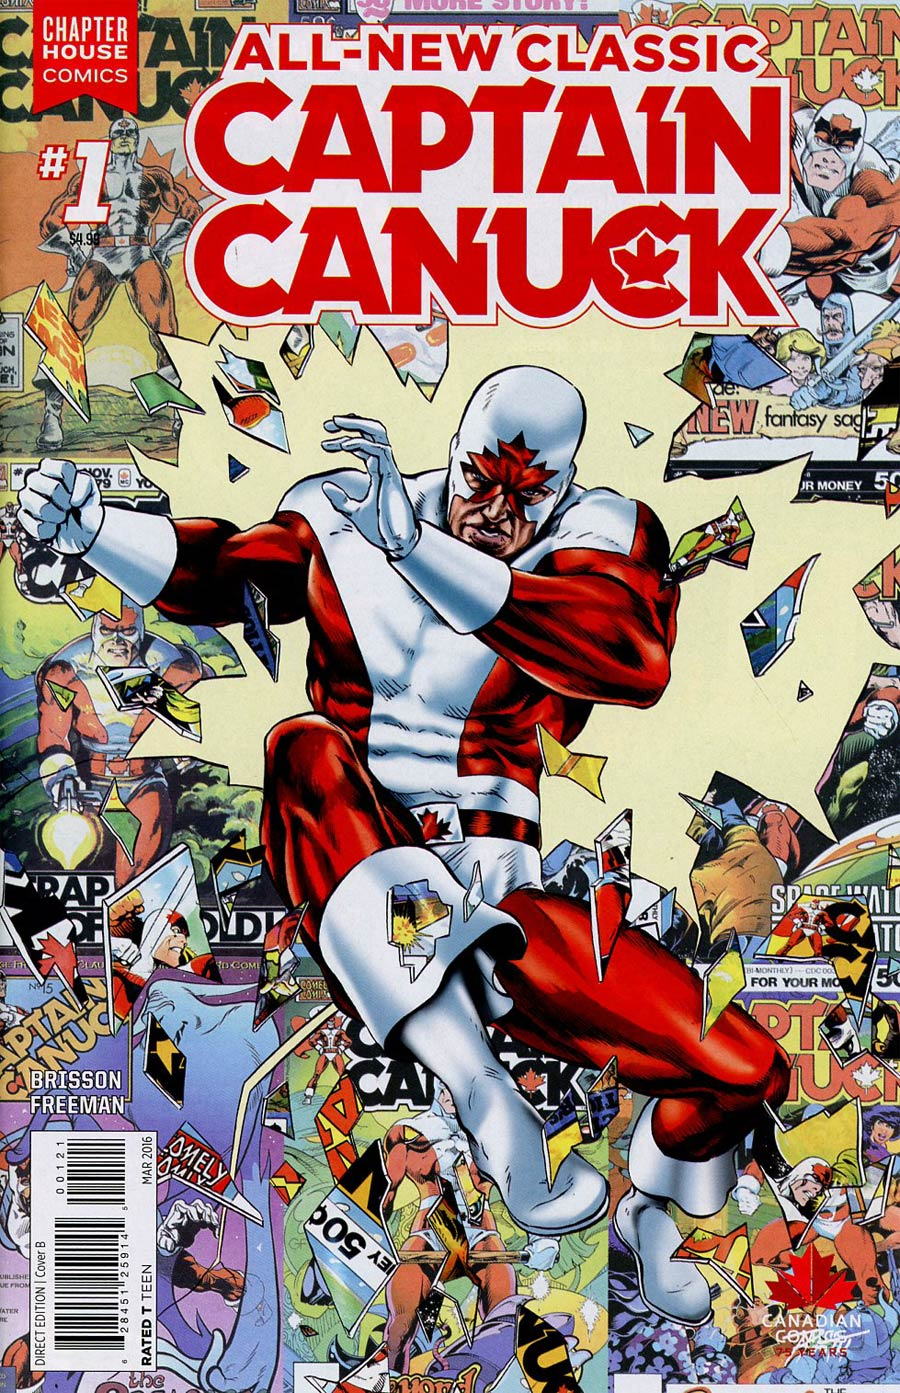 All-New Classic Captain Canuck #1 Cover B Variant Michael Rooth Cover